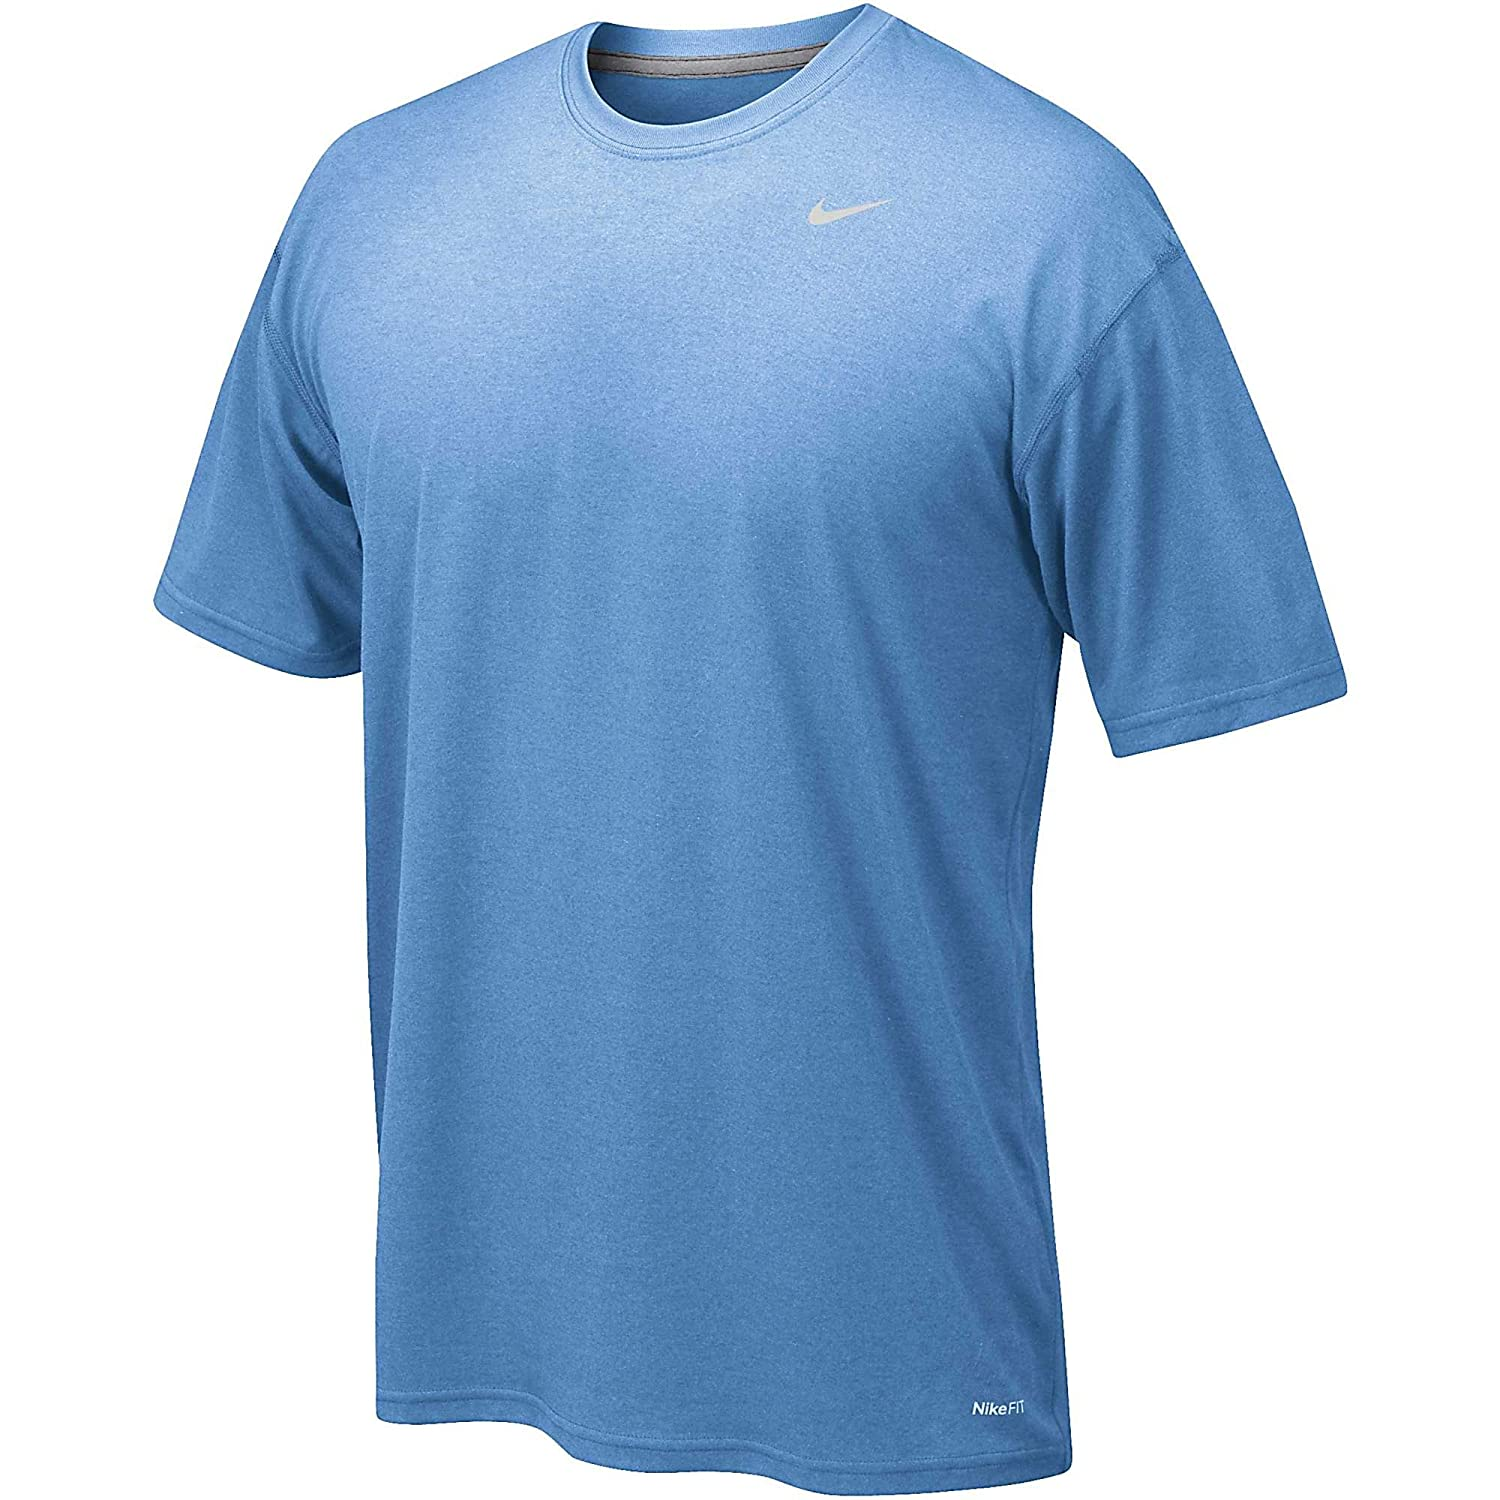 Amazon.com: NIKE Legend Short Sleeve Tee: Sports & Outdoors